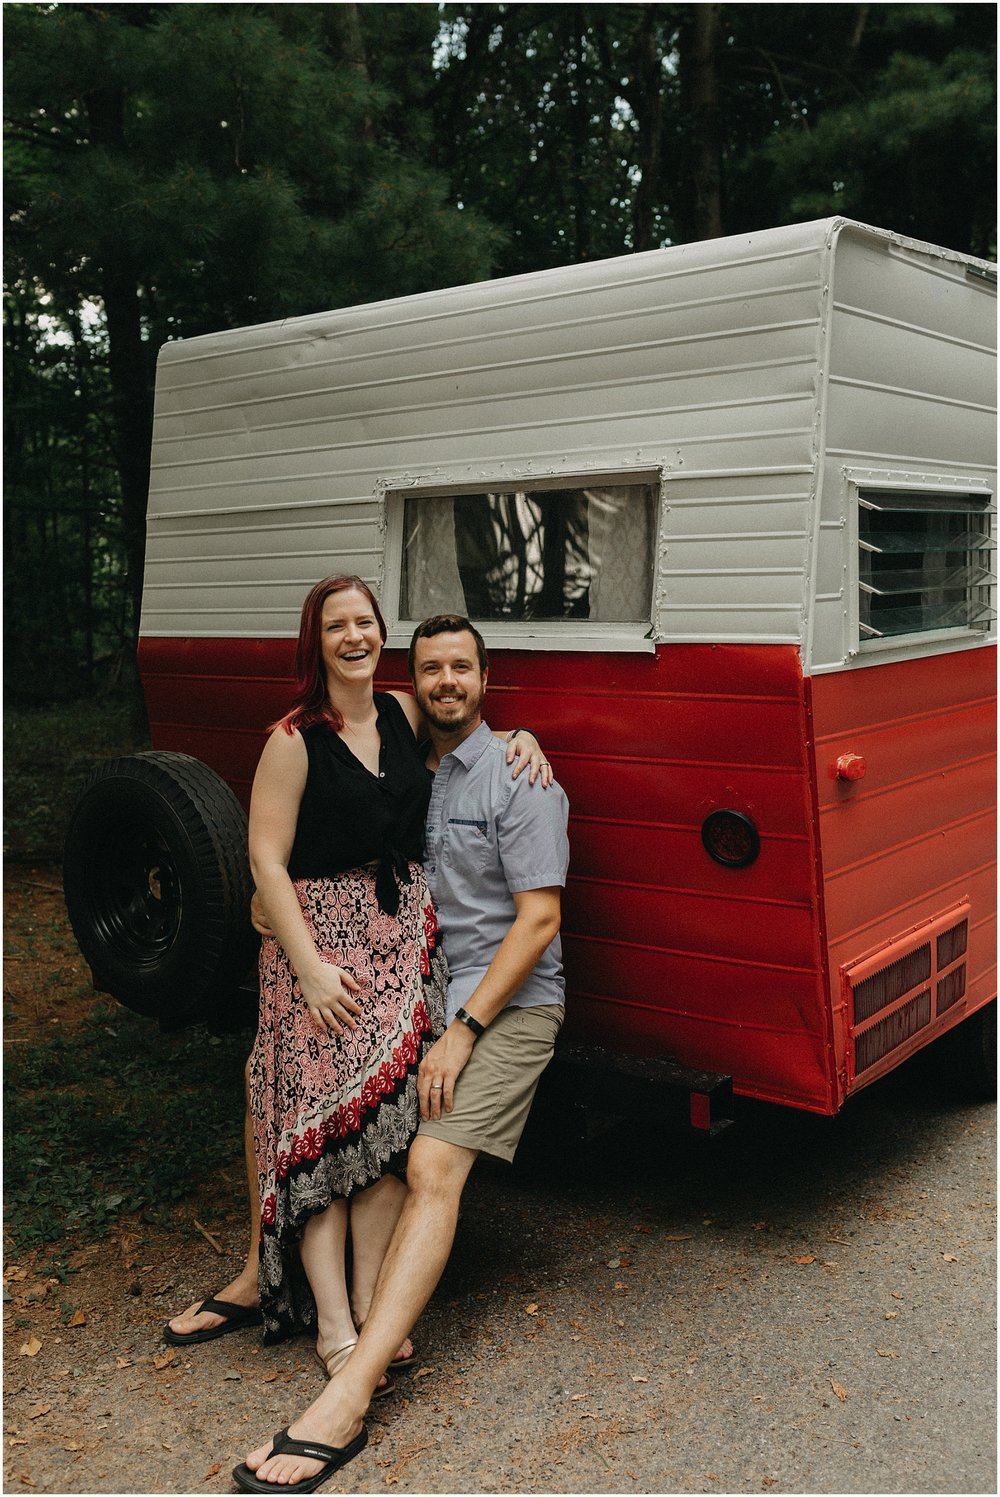 lifestyle-anniversary-engagement-photo session-rv-camping-road trip-vintage trailer-camping-outdoor photos_0247.jpg